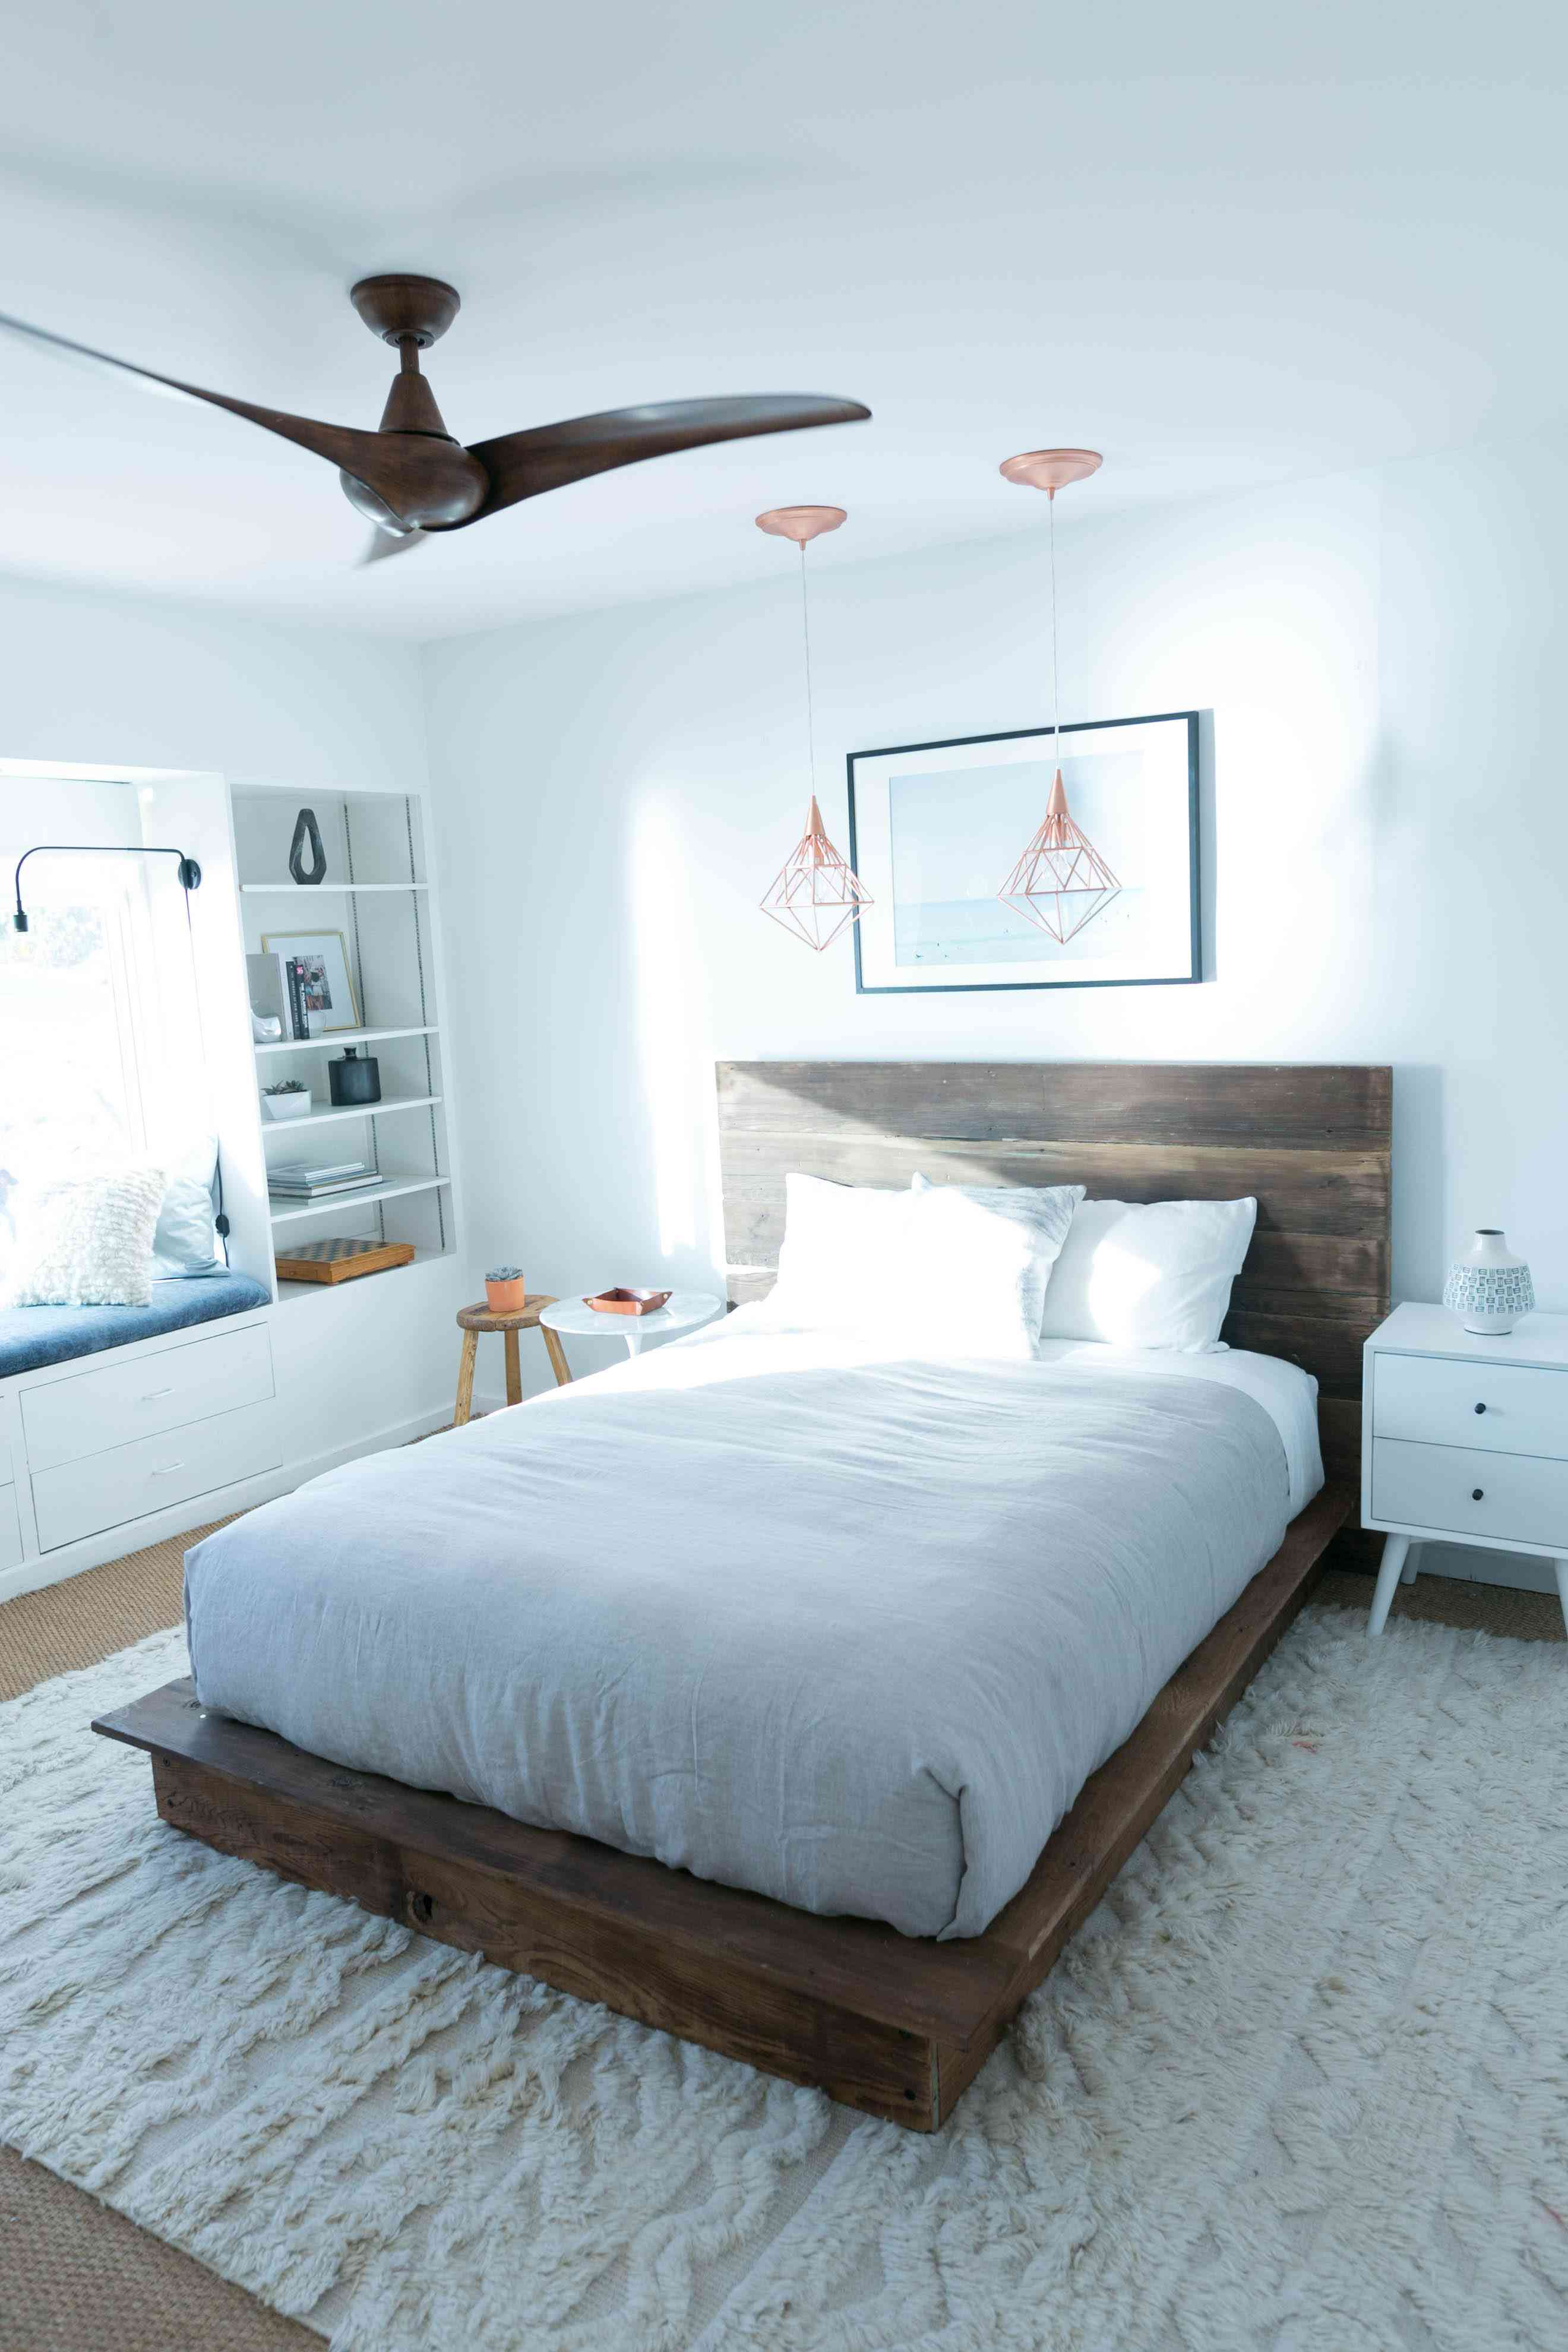 A bedroom with a platform bed in it